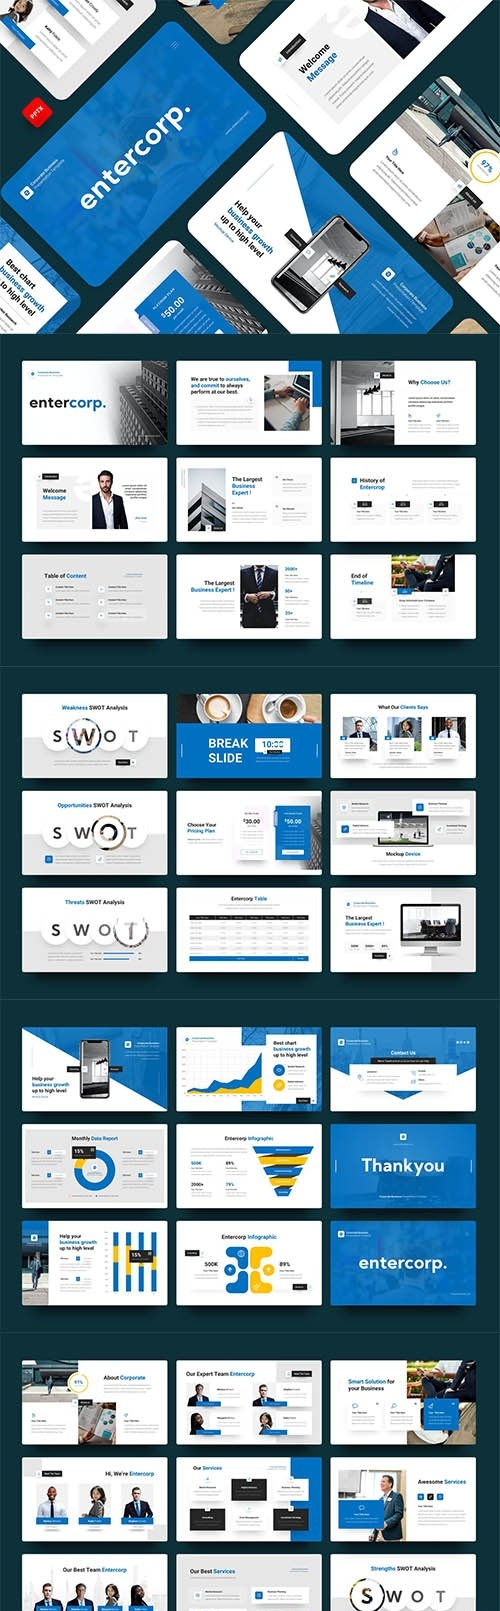 Entercorp-Corporate Business Powerpoint, Google Slides and Keynote Template